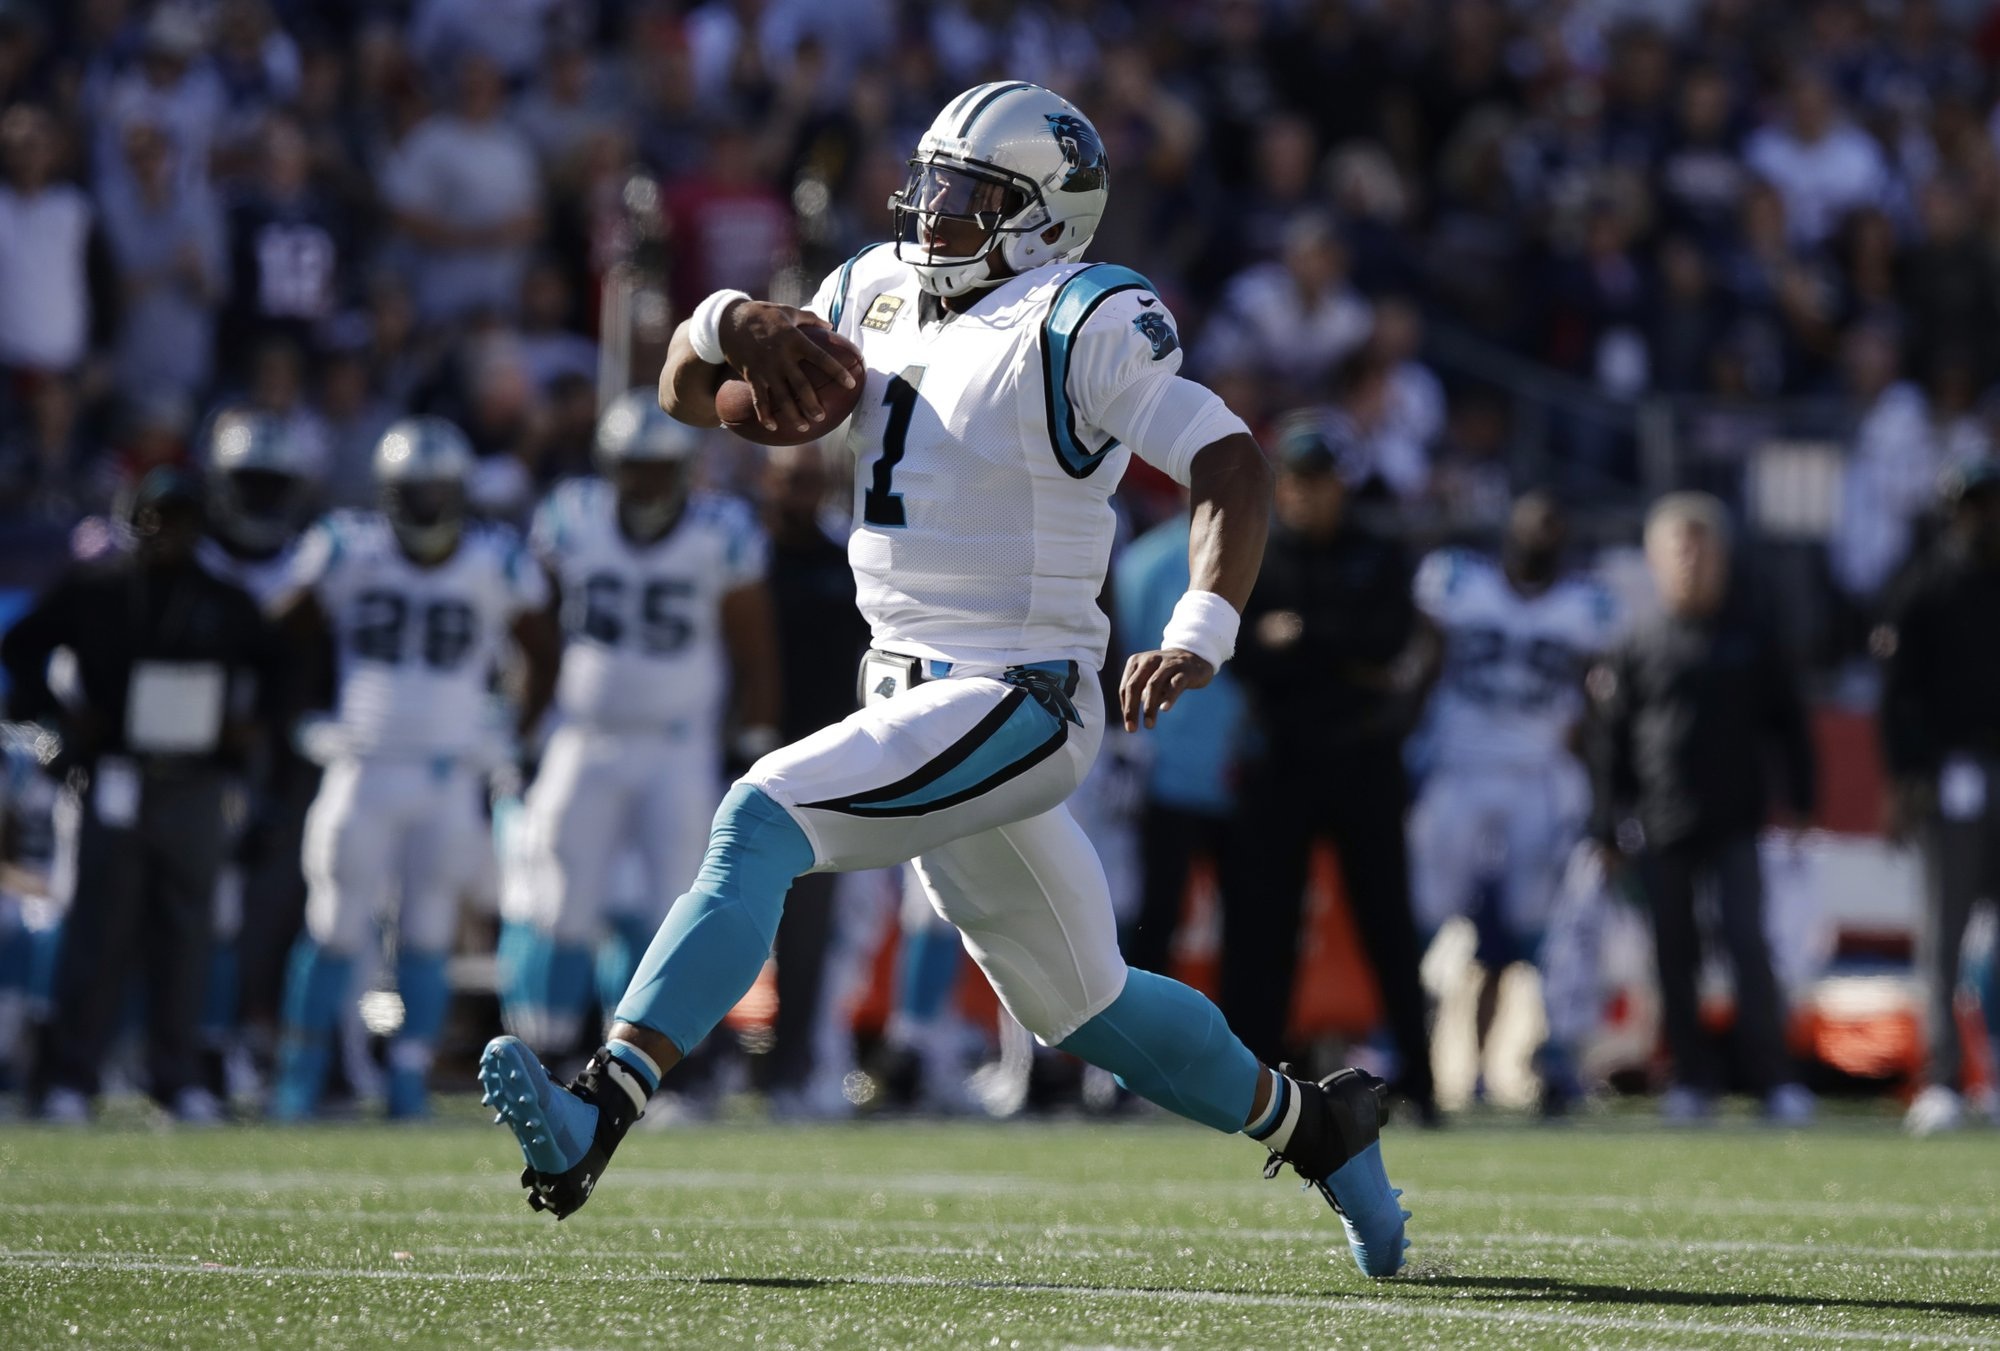 c34a50e82 Panthers offense may need QB Newton to run to be successful